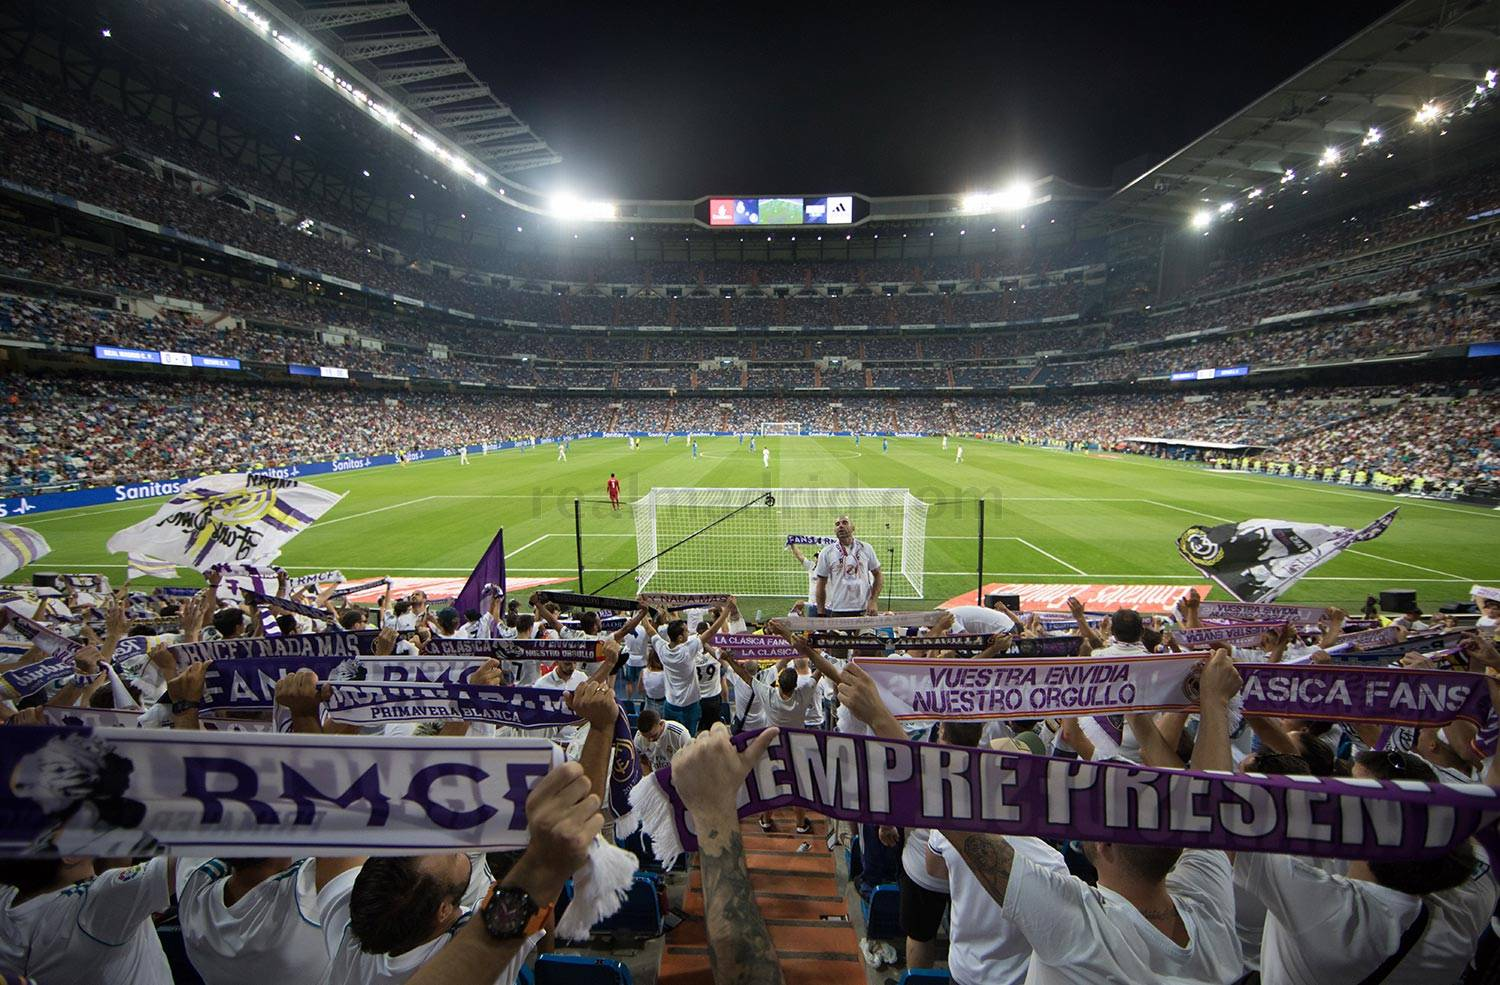 Real Madrid - Real Madrid - Getafe - 19-08-2018